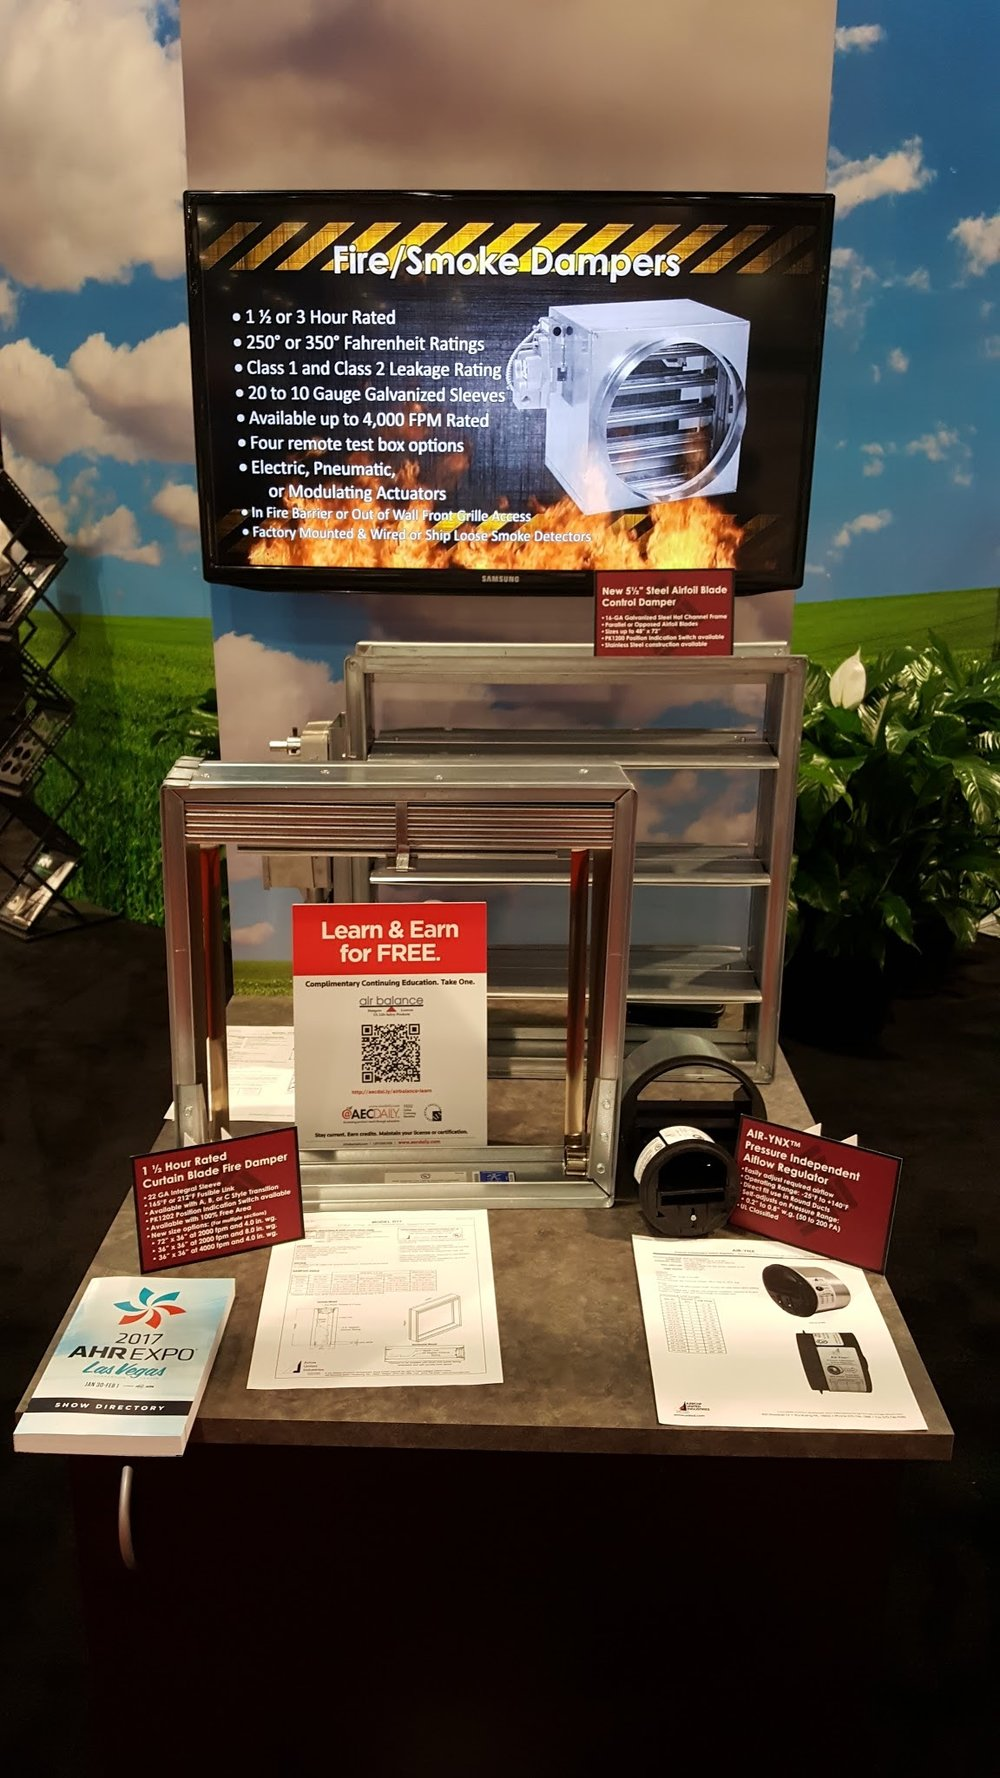 AHR 2017 Photo 4 - Life Safety Products.jpg